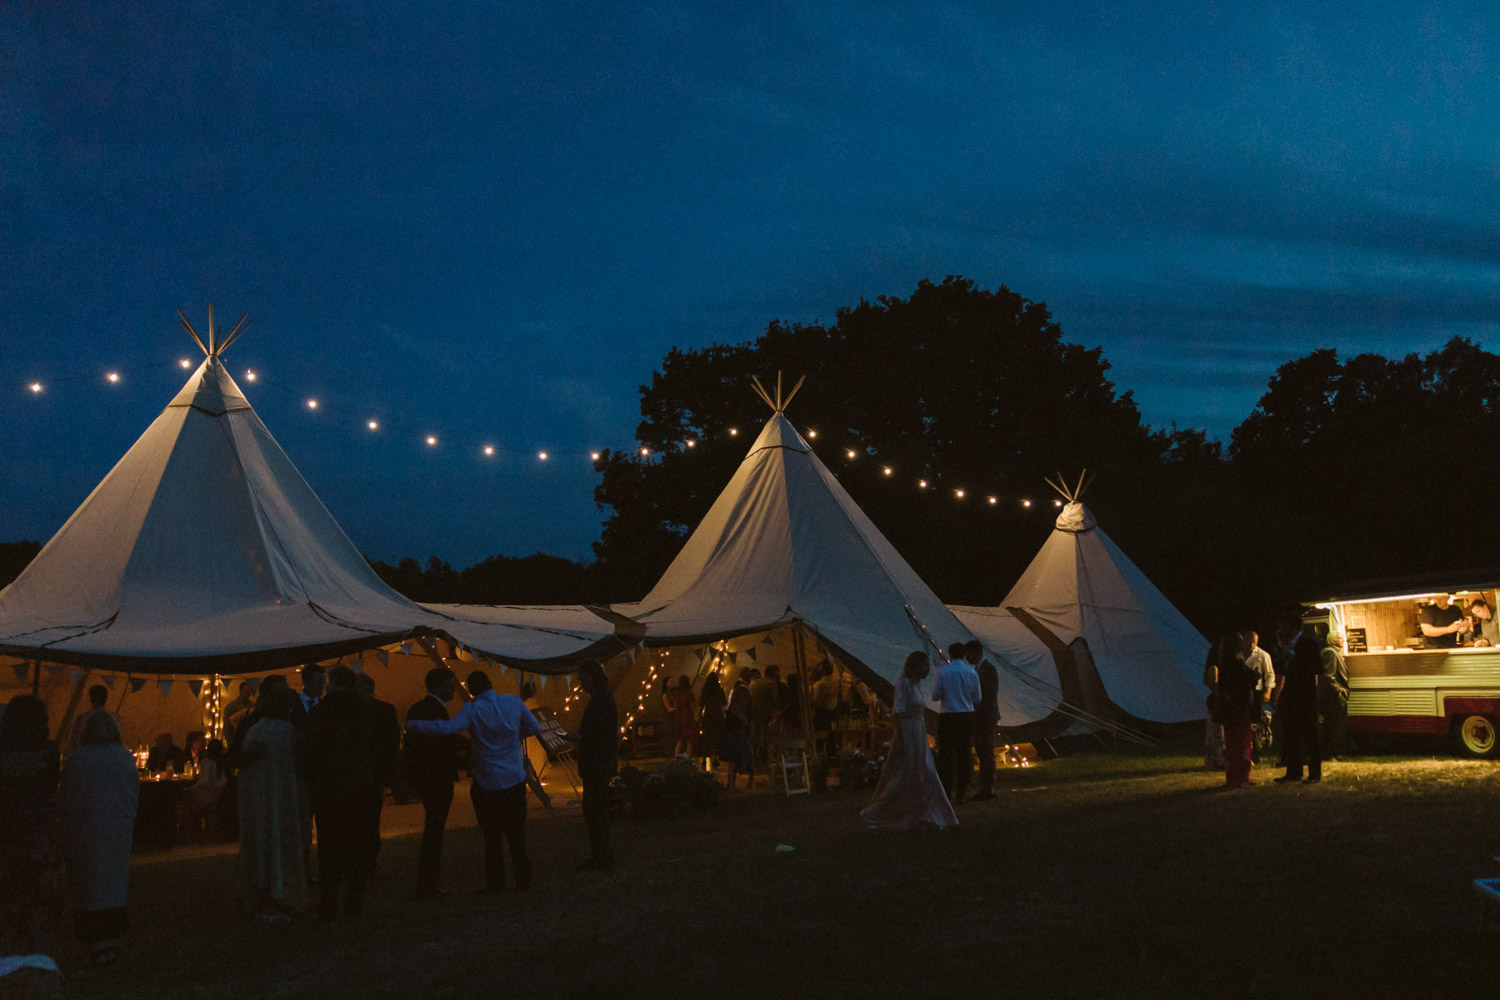 the view of the tipi and fiesta fields at night